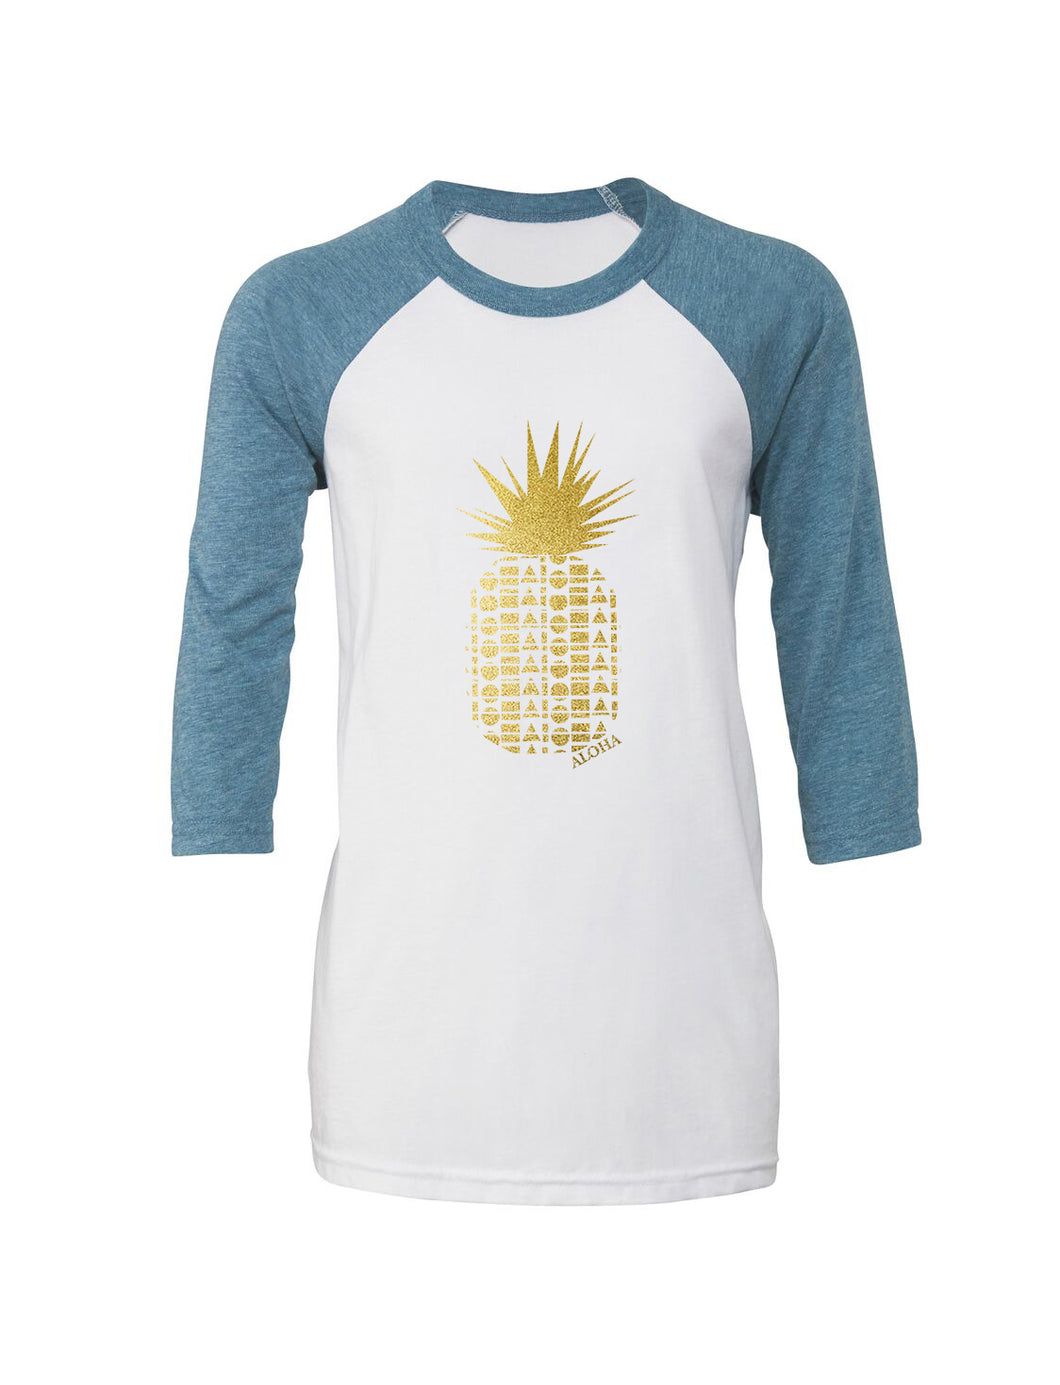 Repeat Pineapple Women's 3/4 Sleeve Baseball Tee